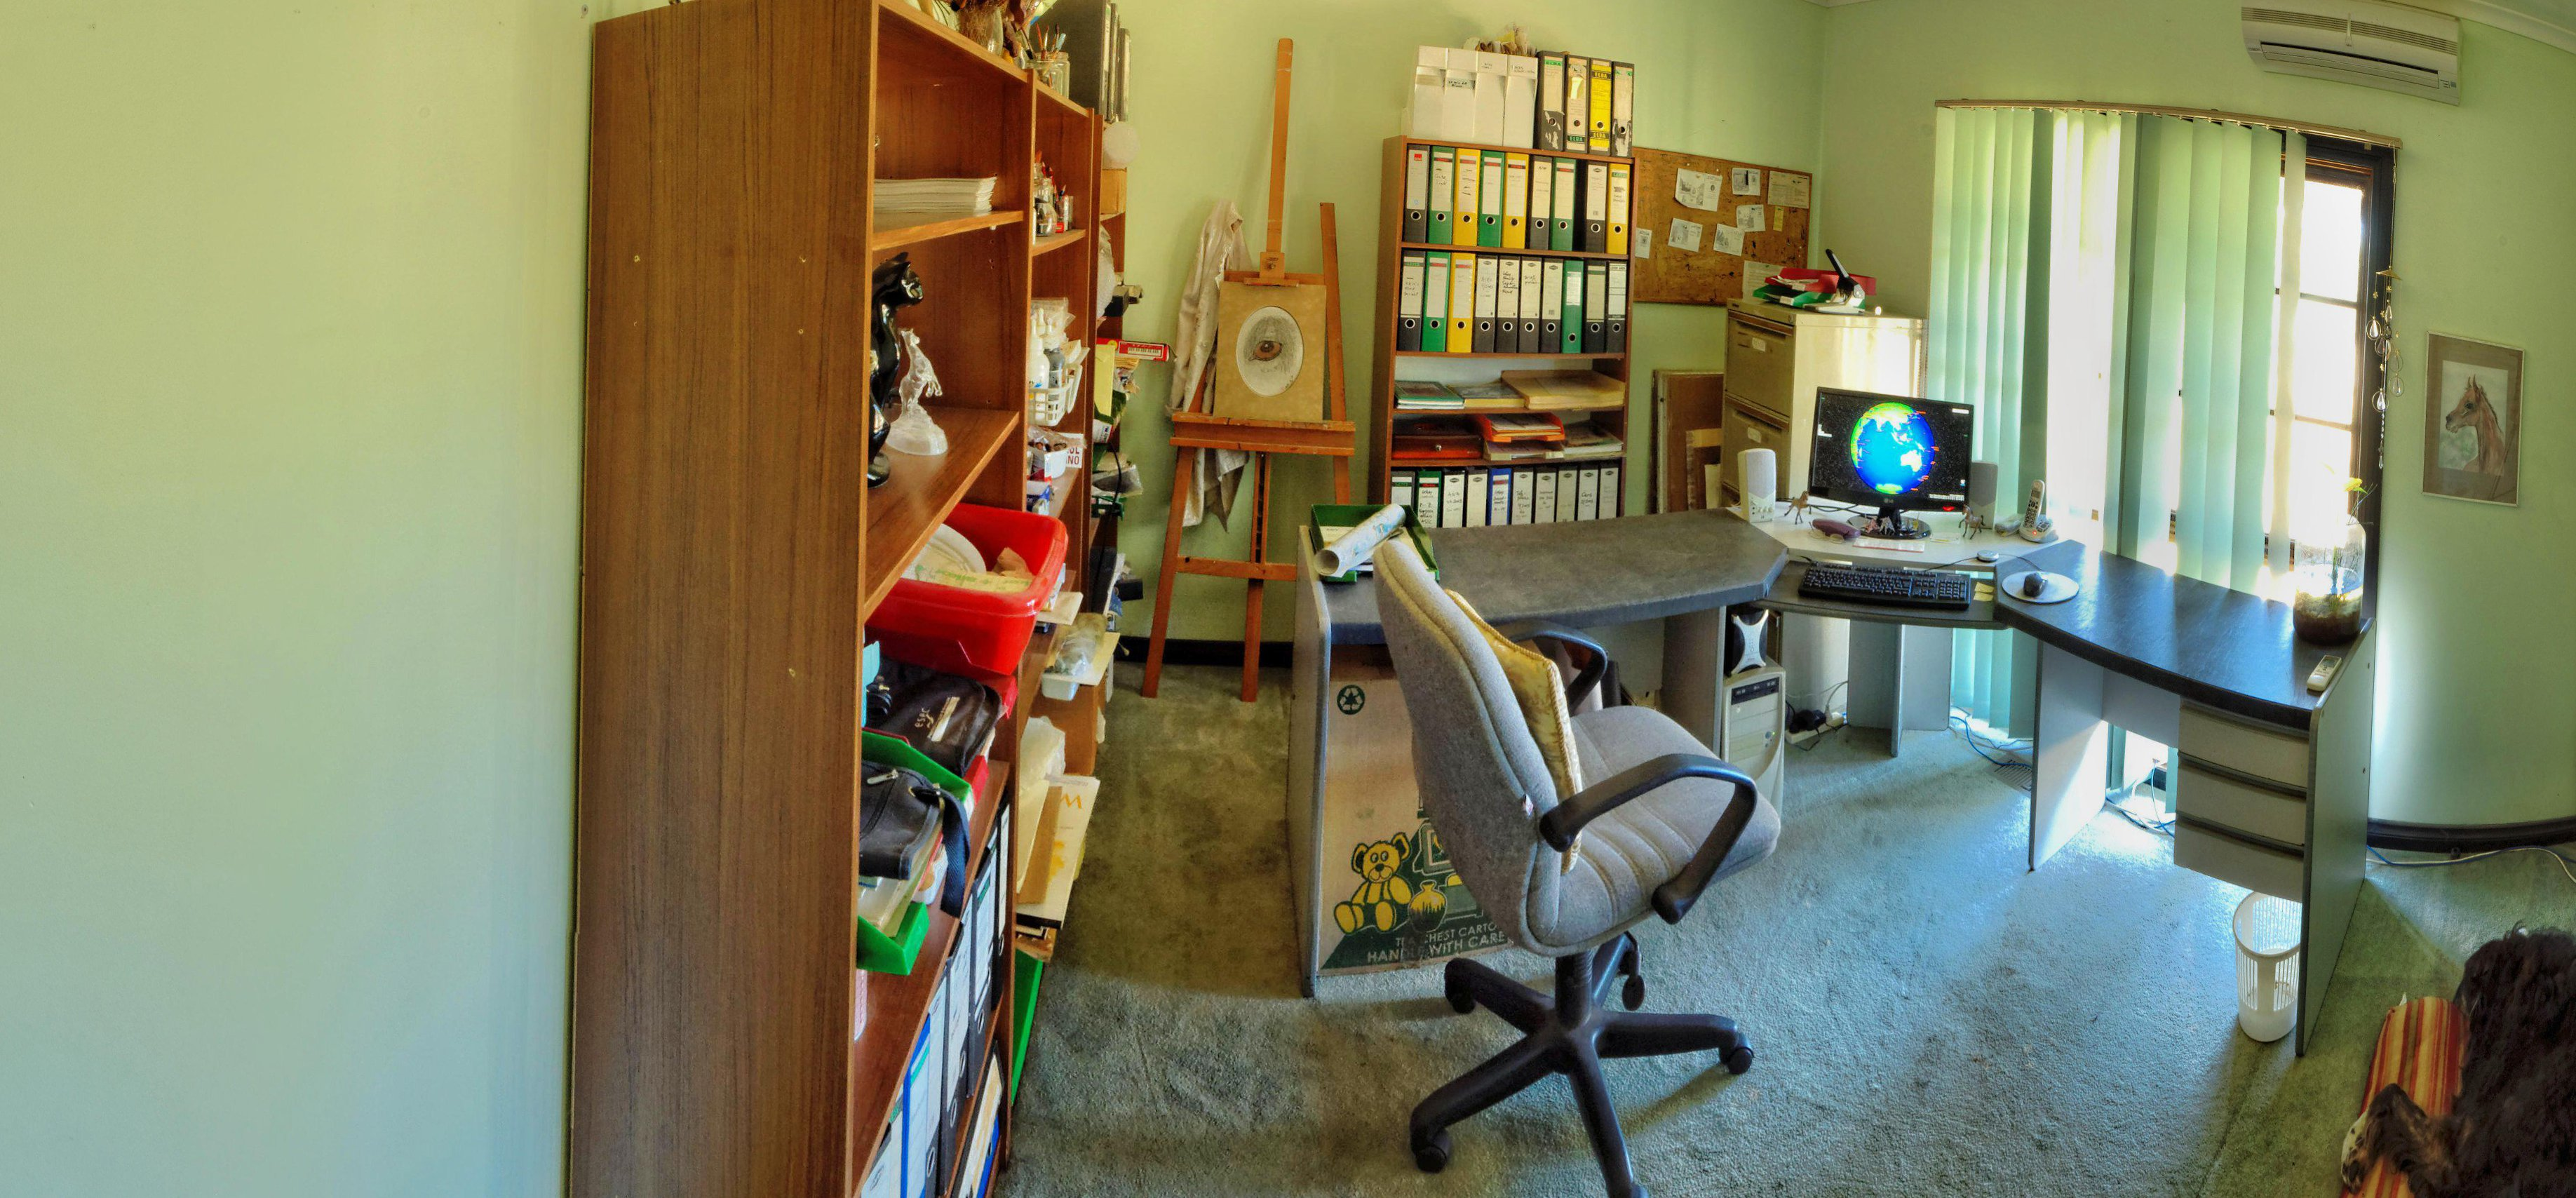 Office-after.jpeg